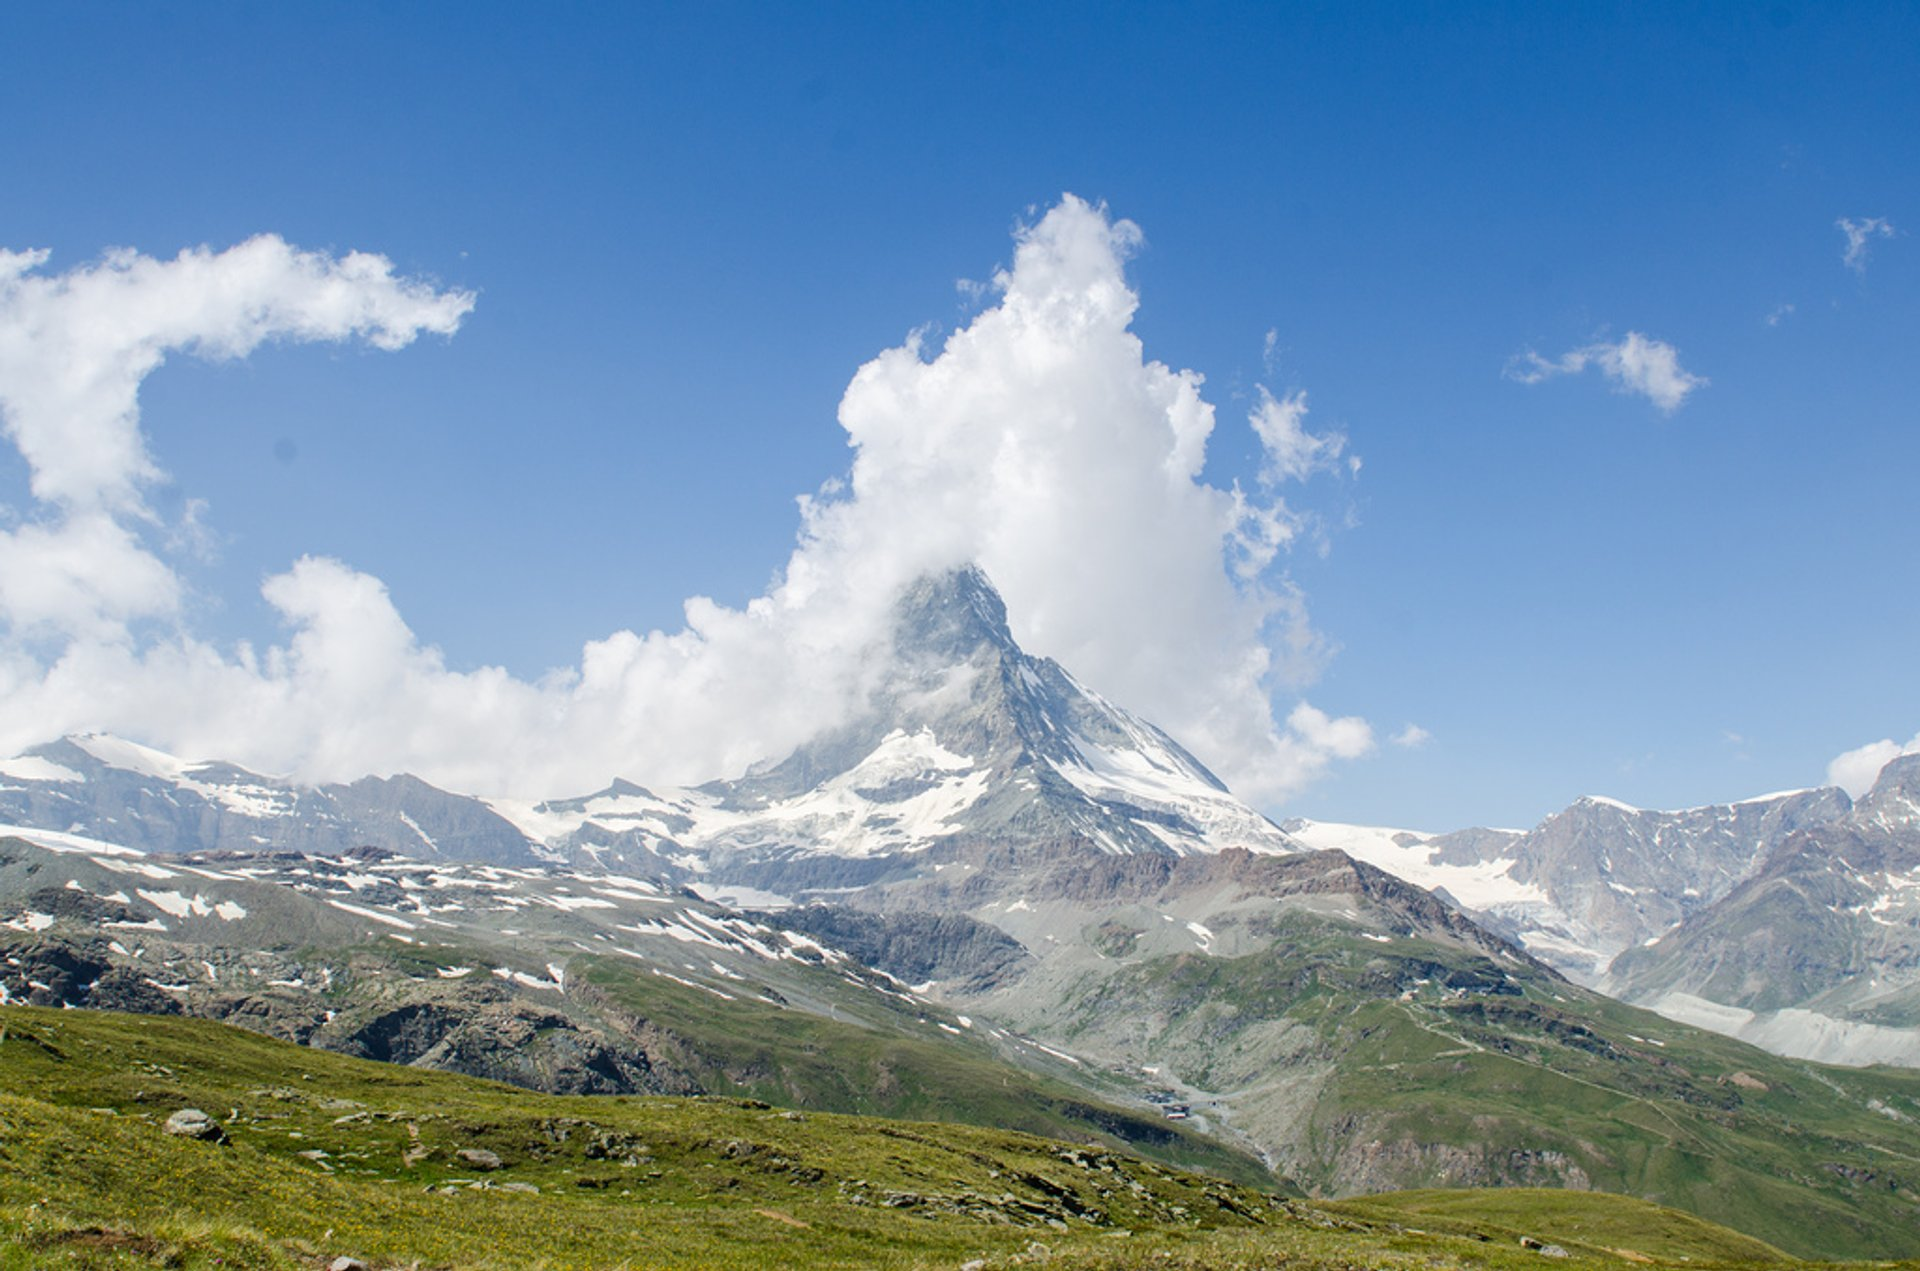 Zermatt & Matterhorn, Switzerland 2020